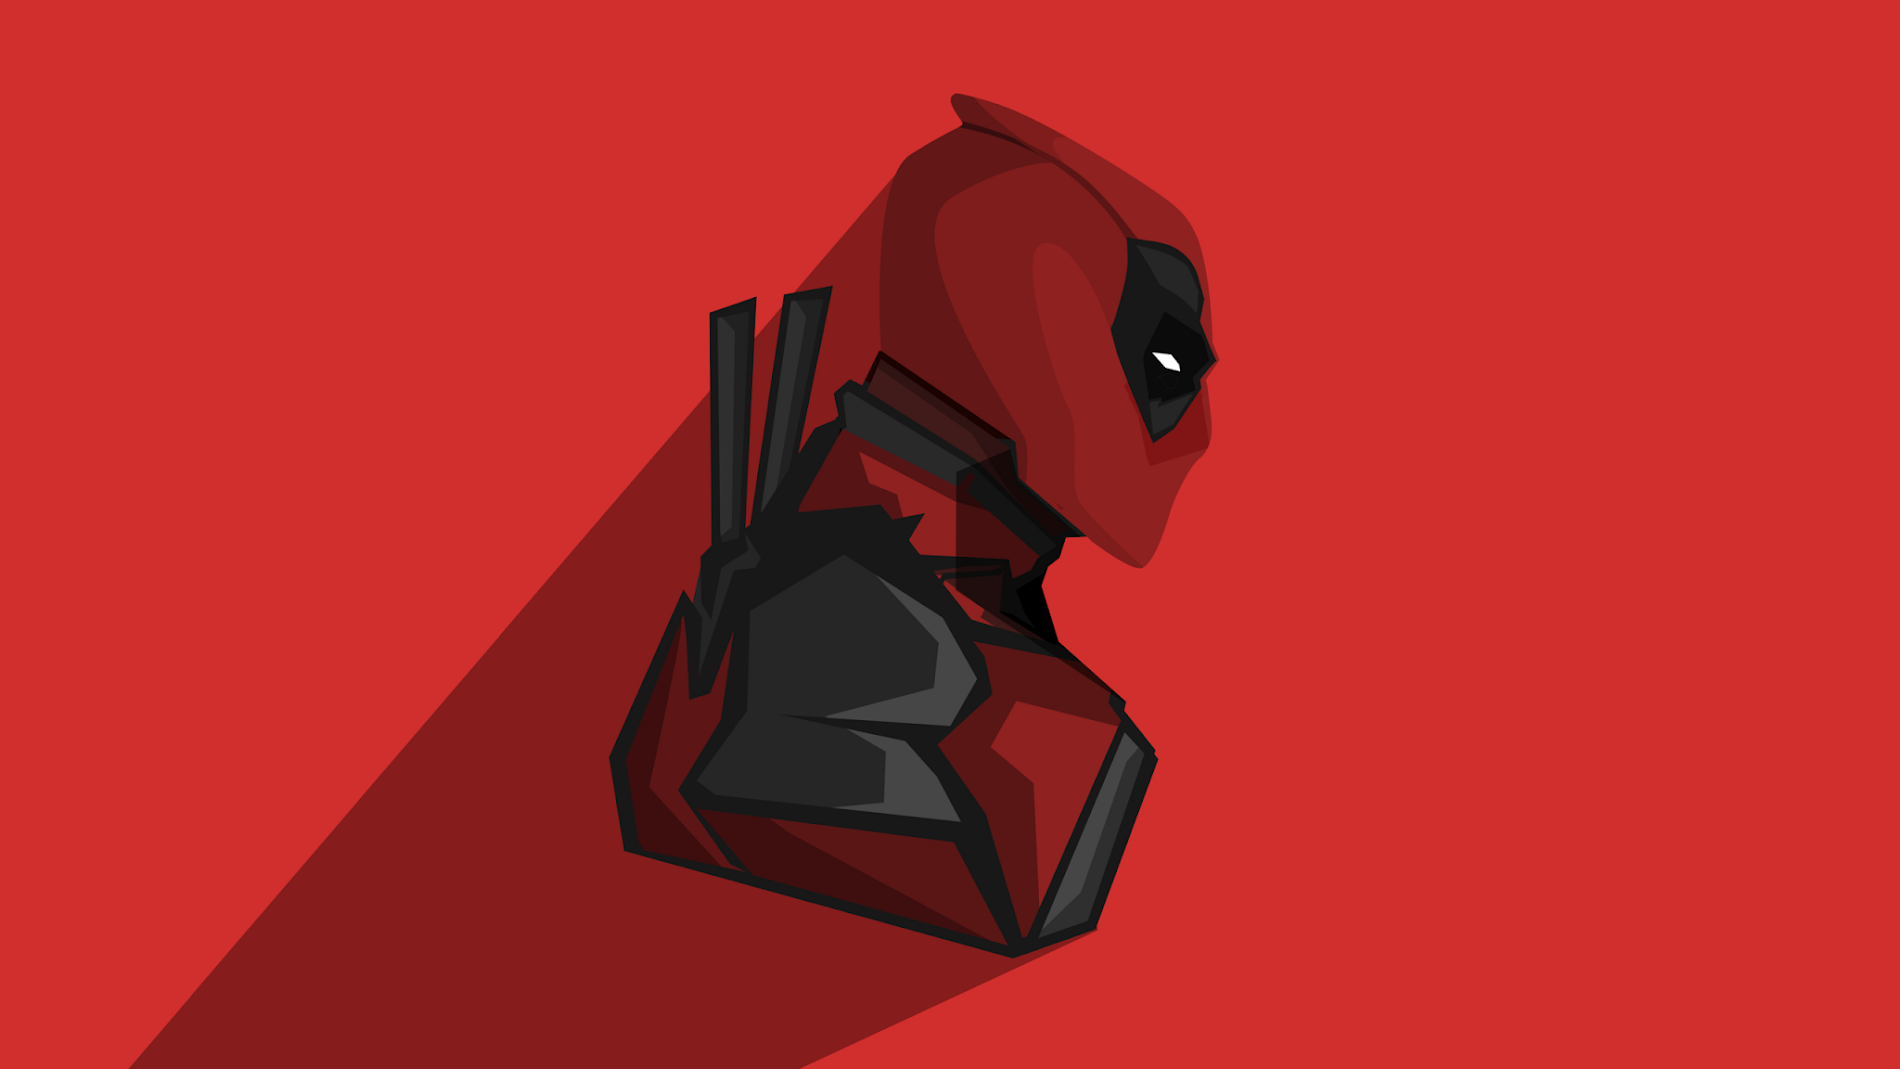 deadpool minimalist graphic wallpaper full hd wallpapers